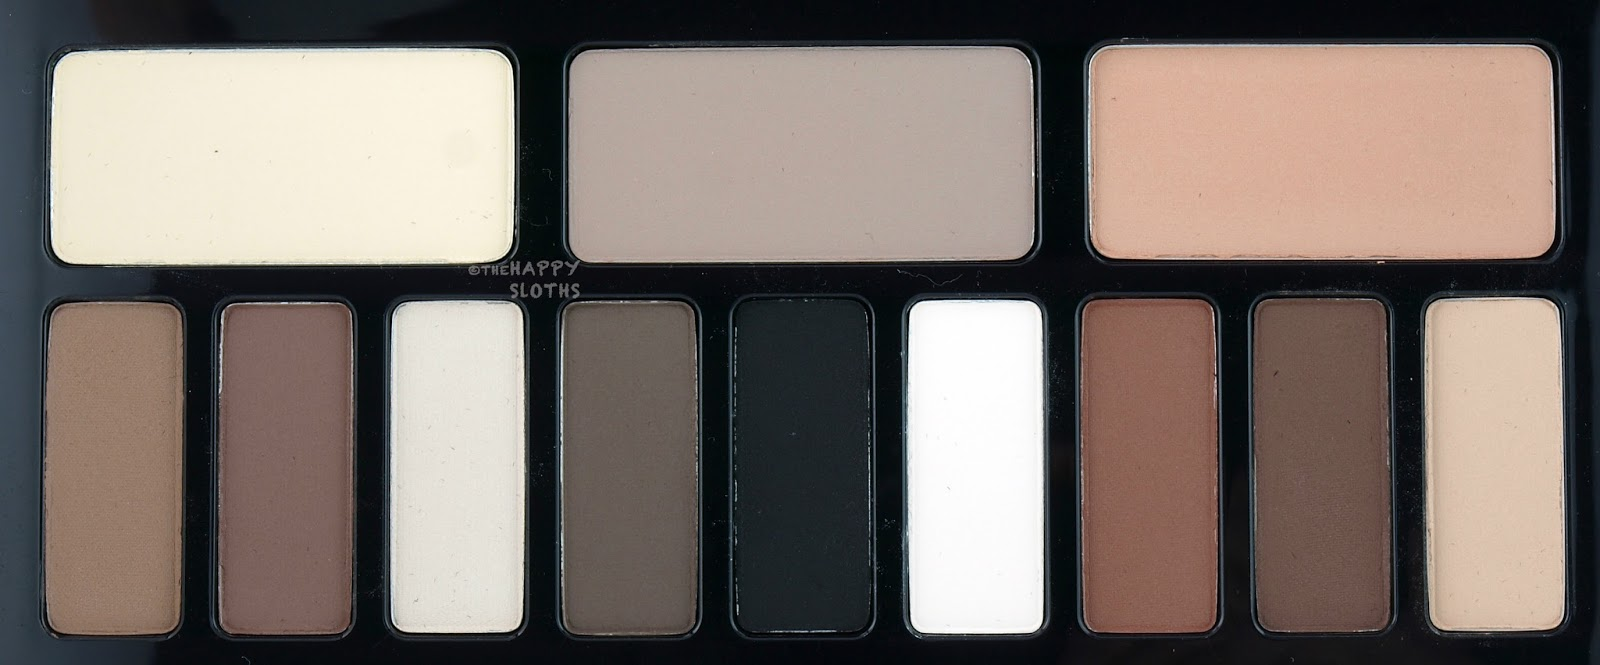 Kat Von D Shade + Light Eye Contour Palette Review Swatches